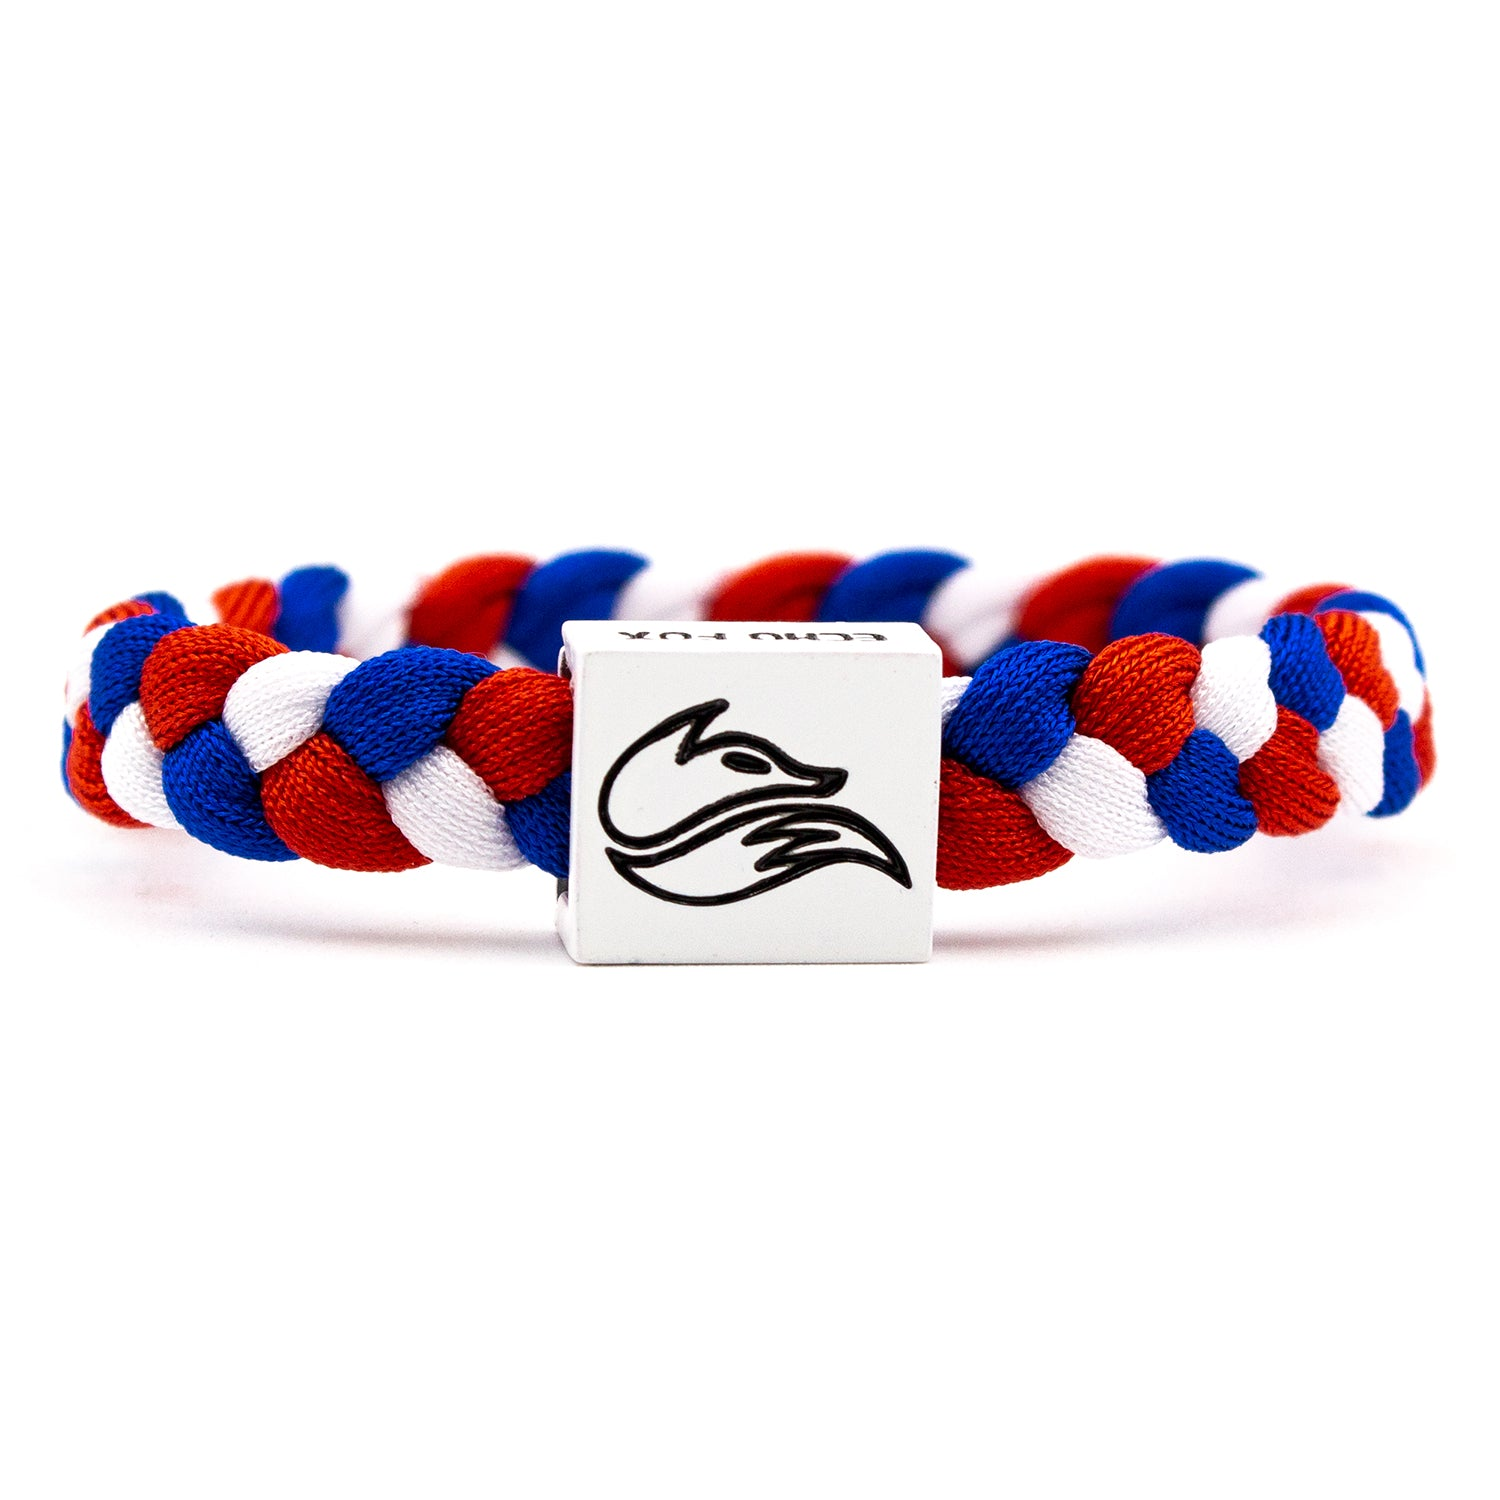 Limited Edition Rift Rivals Bracelet